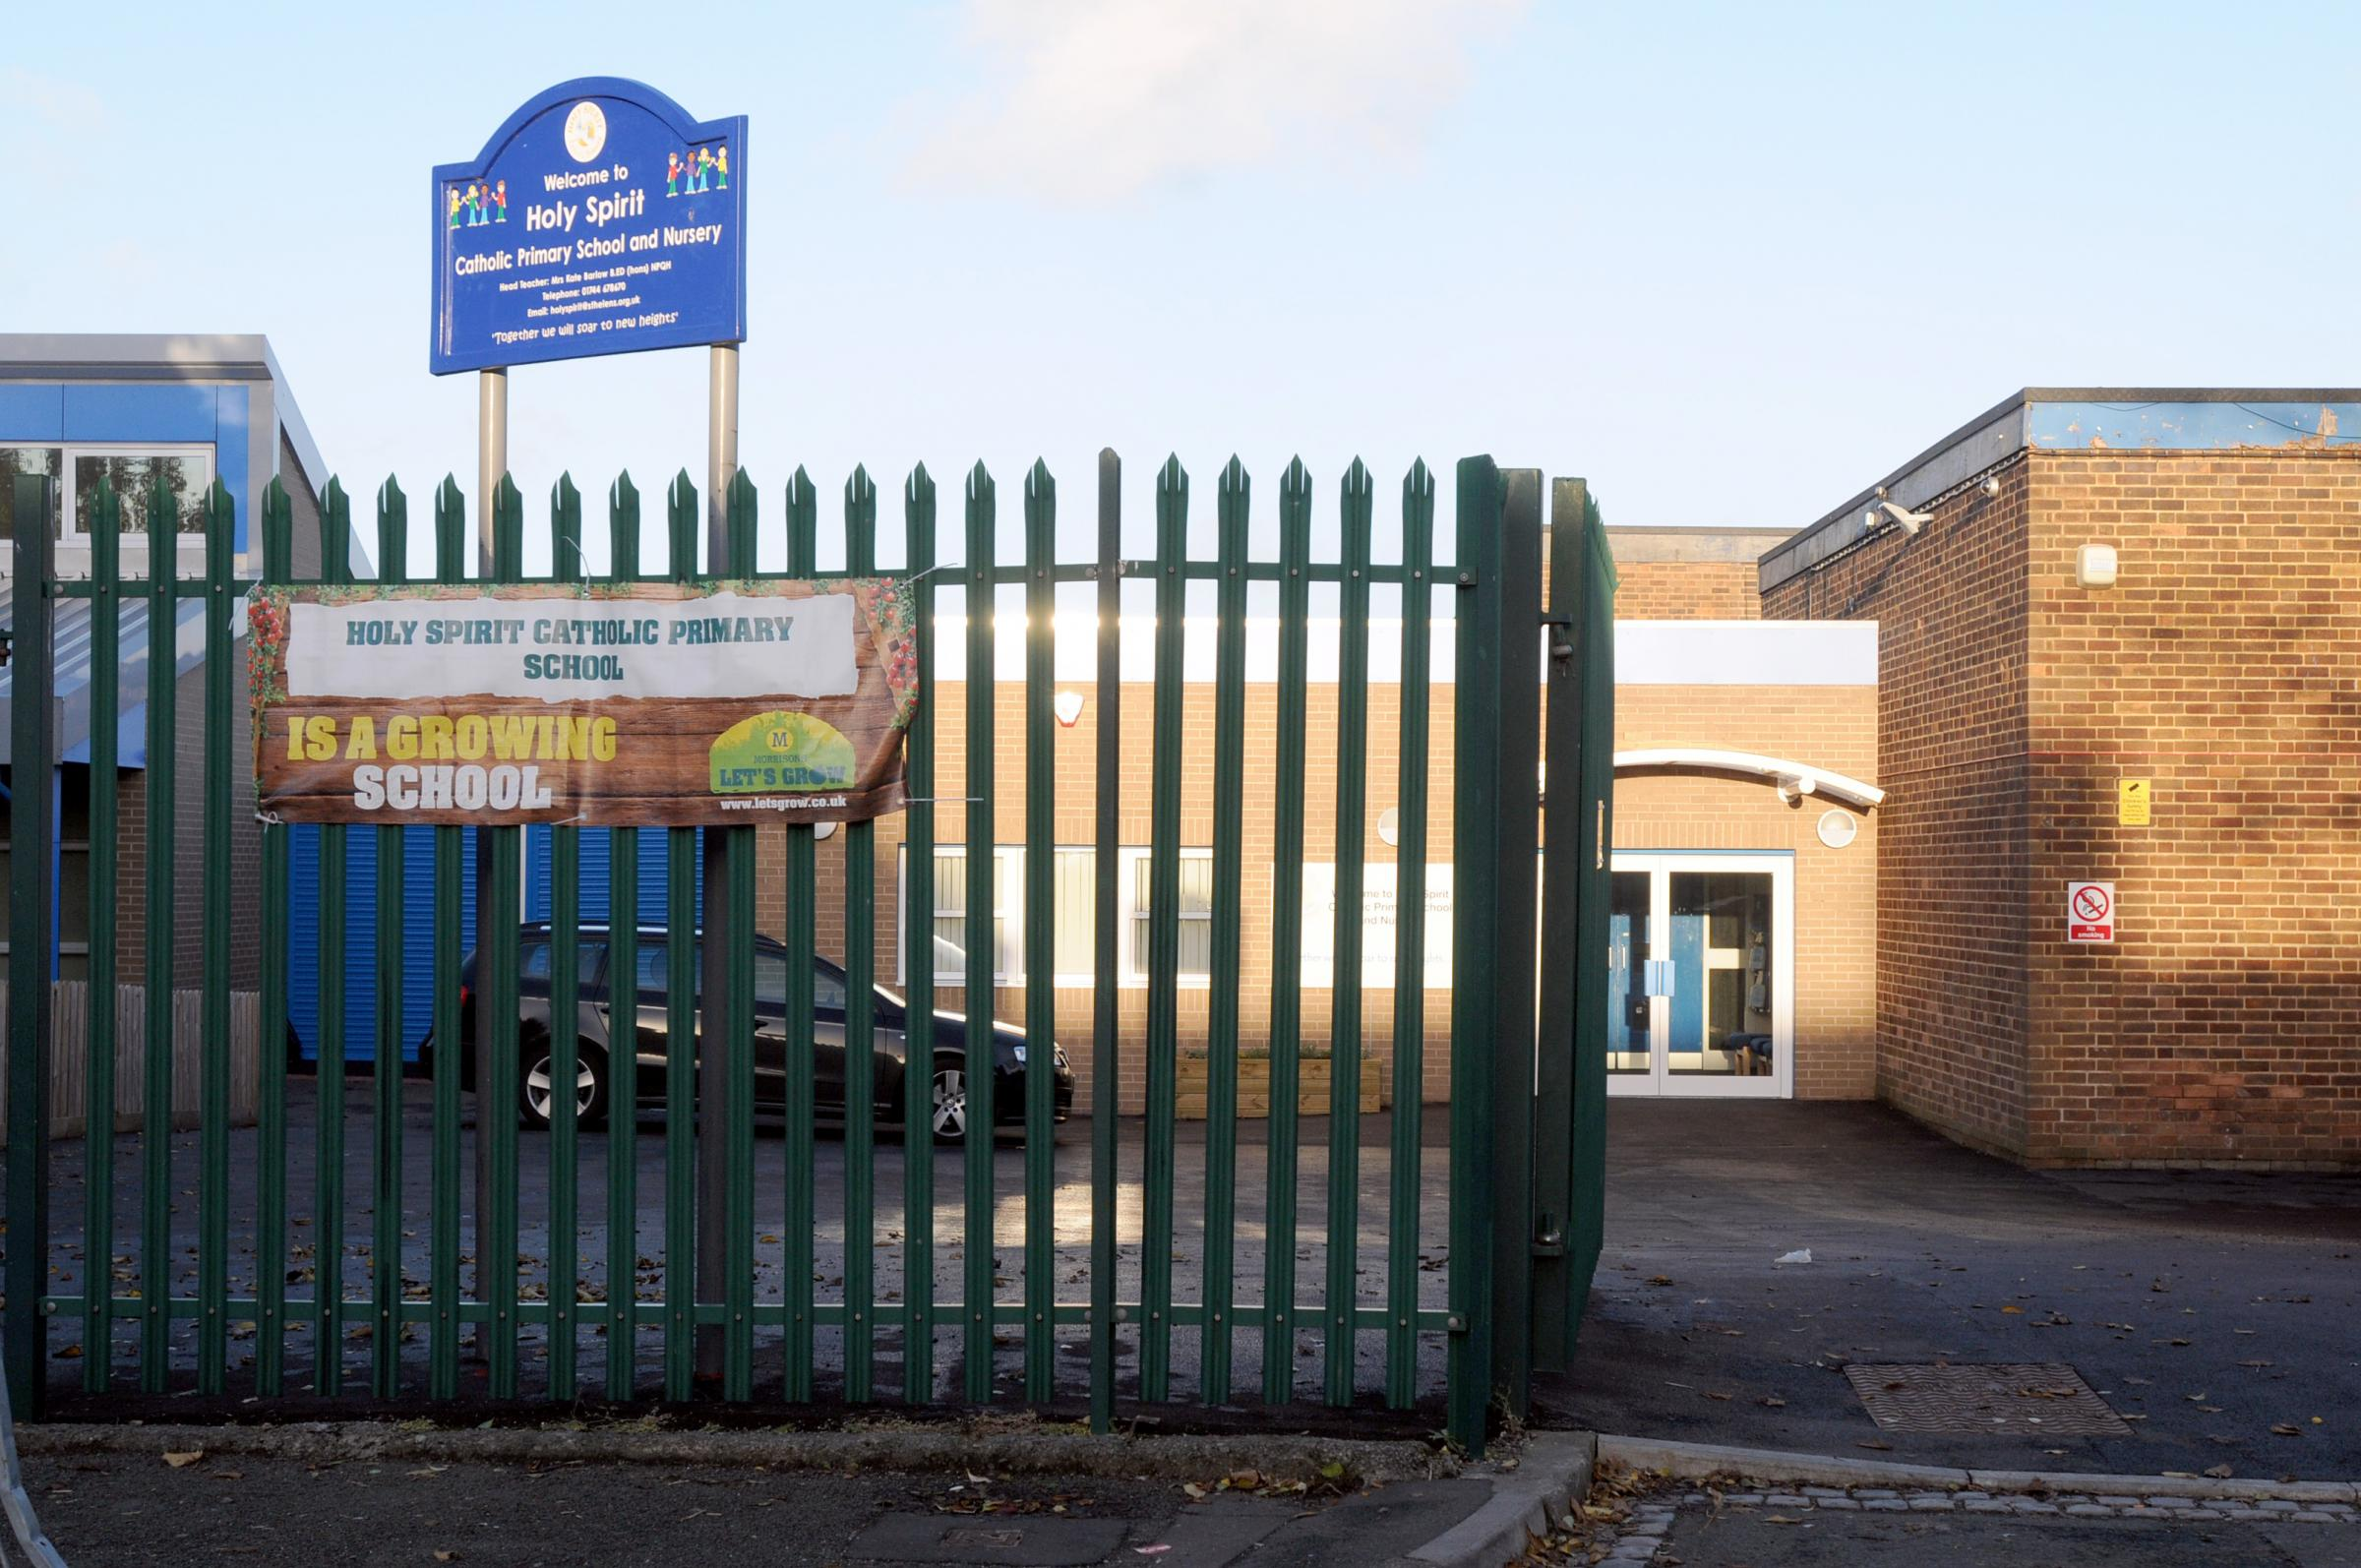 Holy Spirit Catholic Primary School